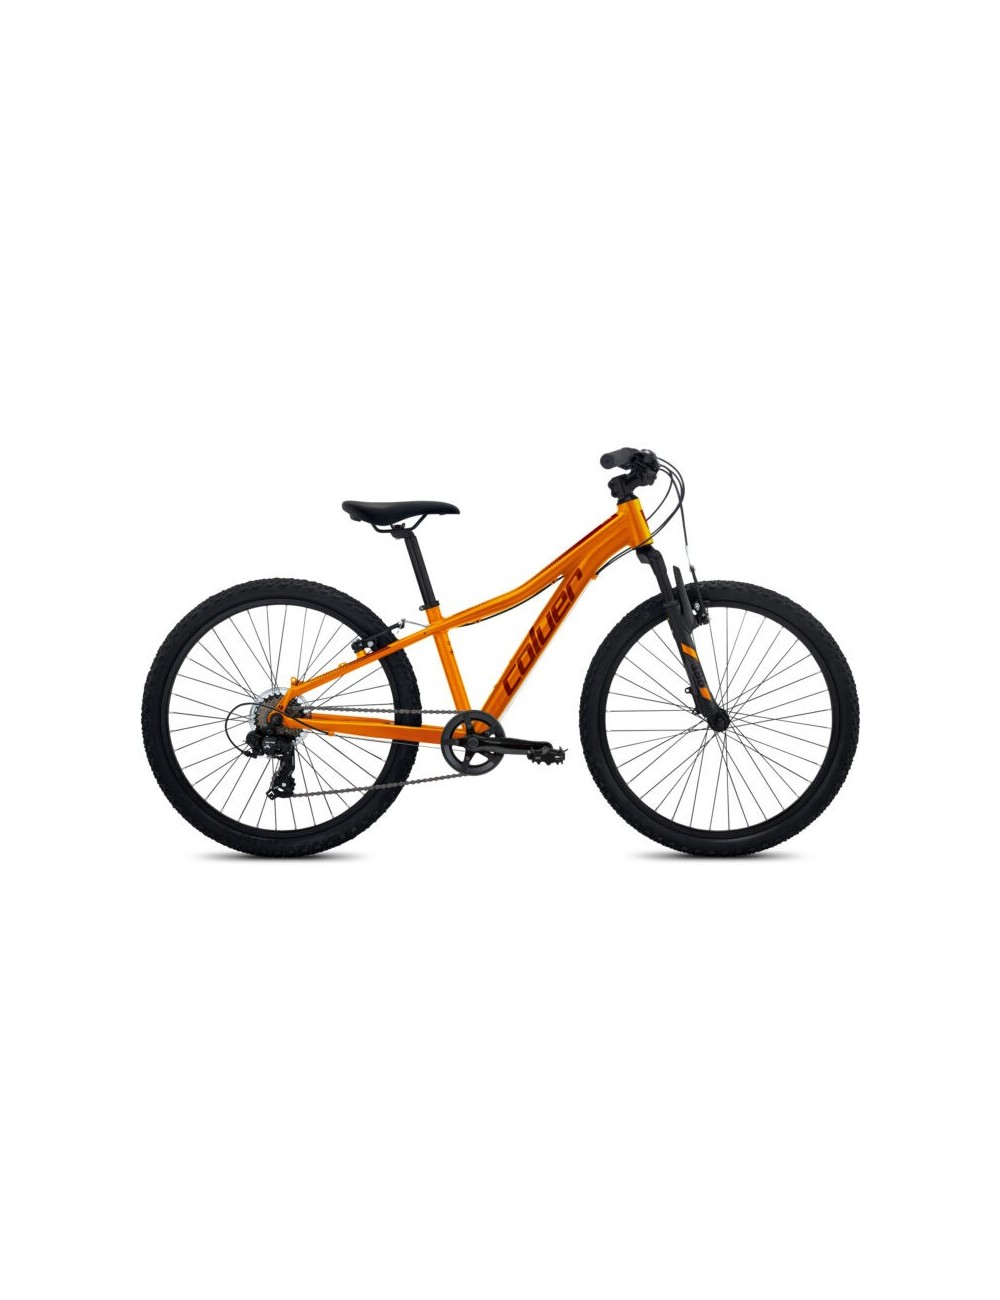 COLUER JUNIOR ASCENT 241 VB LARANJA 2021